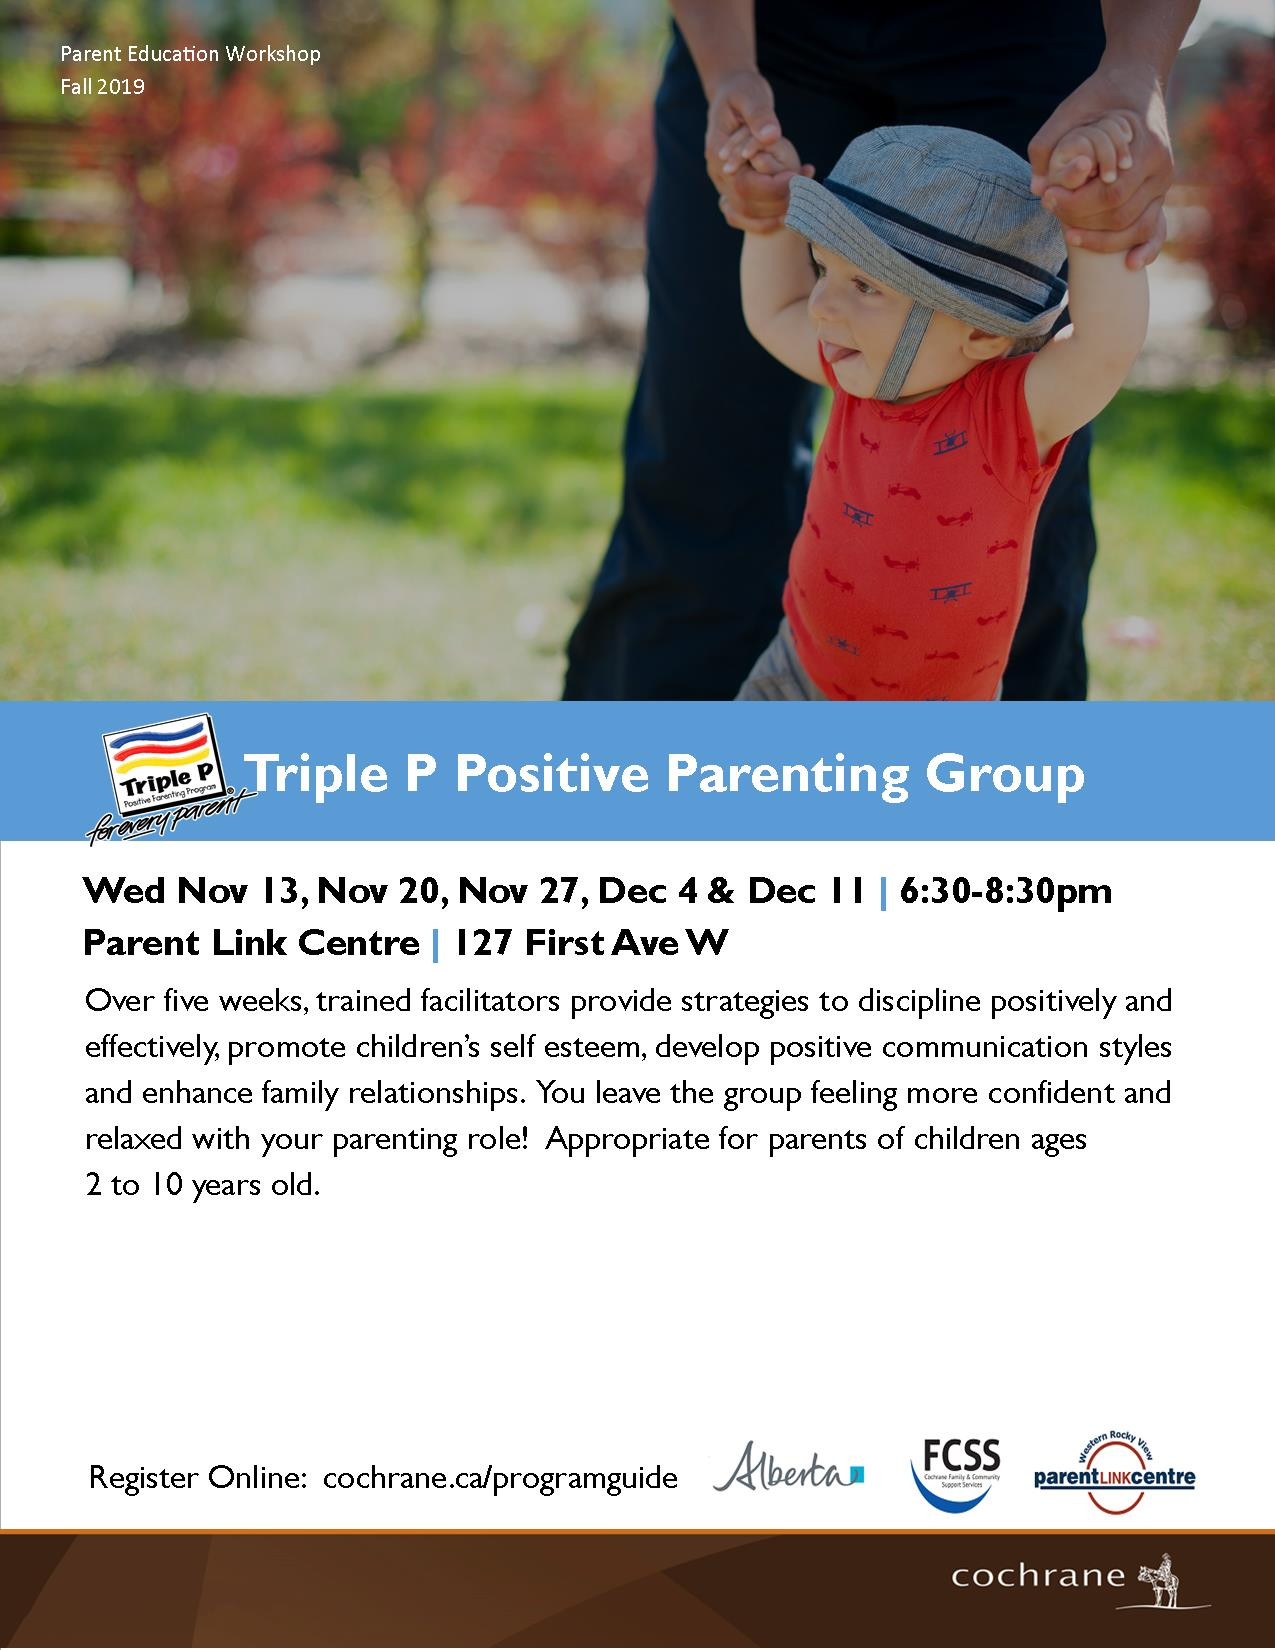 Postive Parenting Group